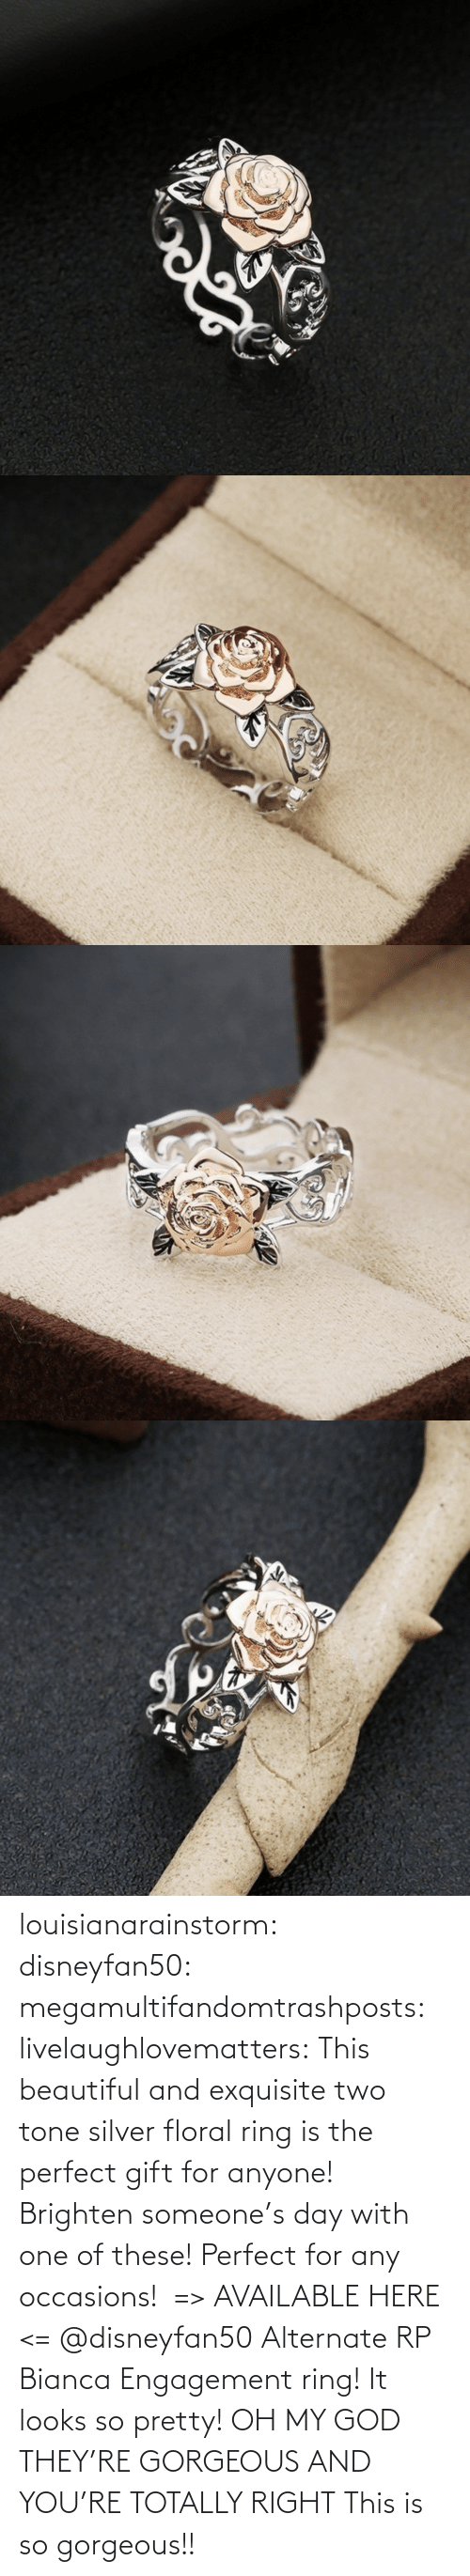 Engagement: louisianarainstorm: disneyfan50:  megamultifandomtrashposts:  livelaughlovematters:  This beautiful and exquisite two tone silver floral ring is the perfect gift for anyone! Brighten someone's day with one of these! Perfect for any occasions!  => AVAILABLE HERE <=    @disneyfan50 Alternate RP Bianca Engagement ring! It looks so pretty!  OH MY GOD THEY'RE GORGEOUS AND YOU'RE TOTALLY RIGHT    This is so gorgeous!!